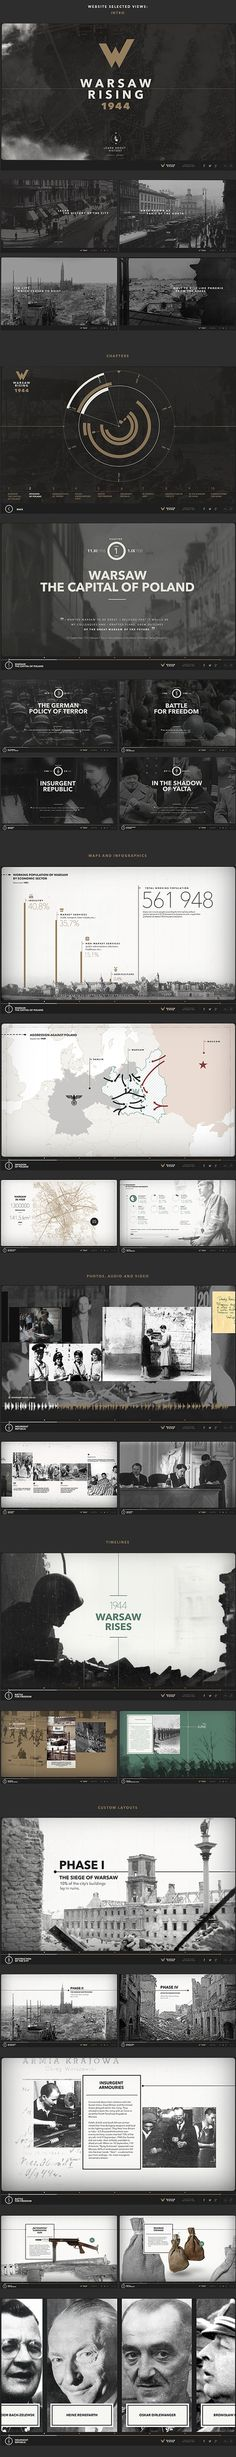 Warsaw Rising on Behance #layout #design #web